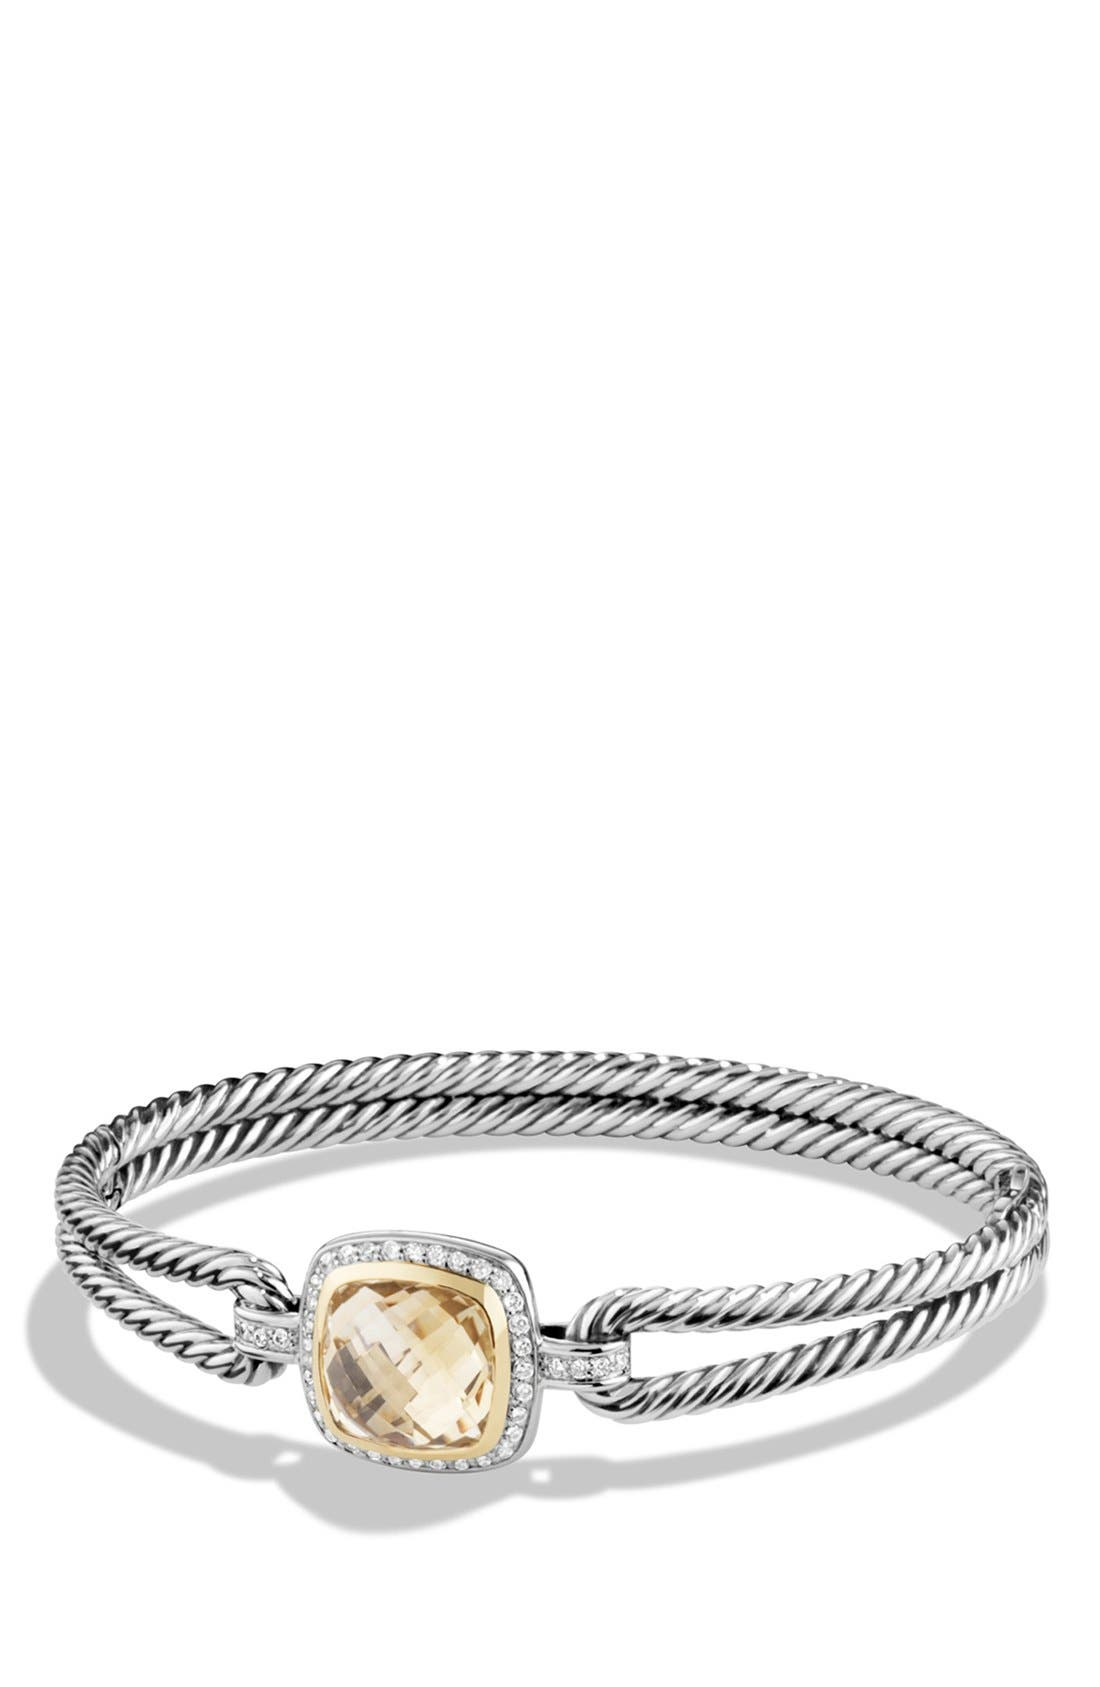 'Albion' Bracelet with Diamonds and 18K Gold,                             Main thumbnail 1, color,                             CHAMPAGNE CITRINE